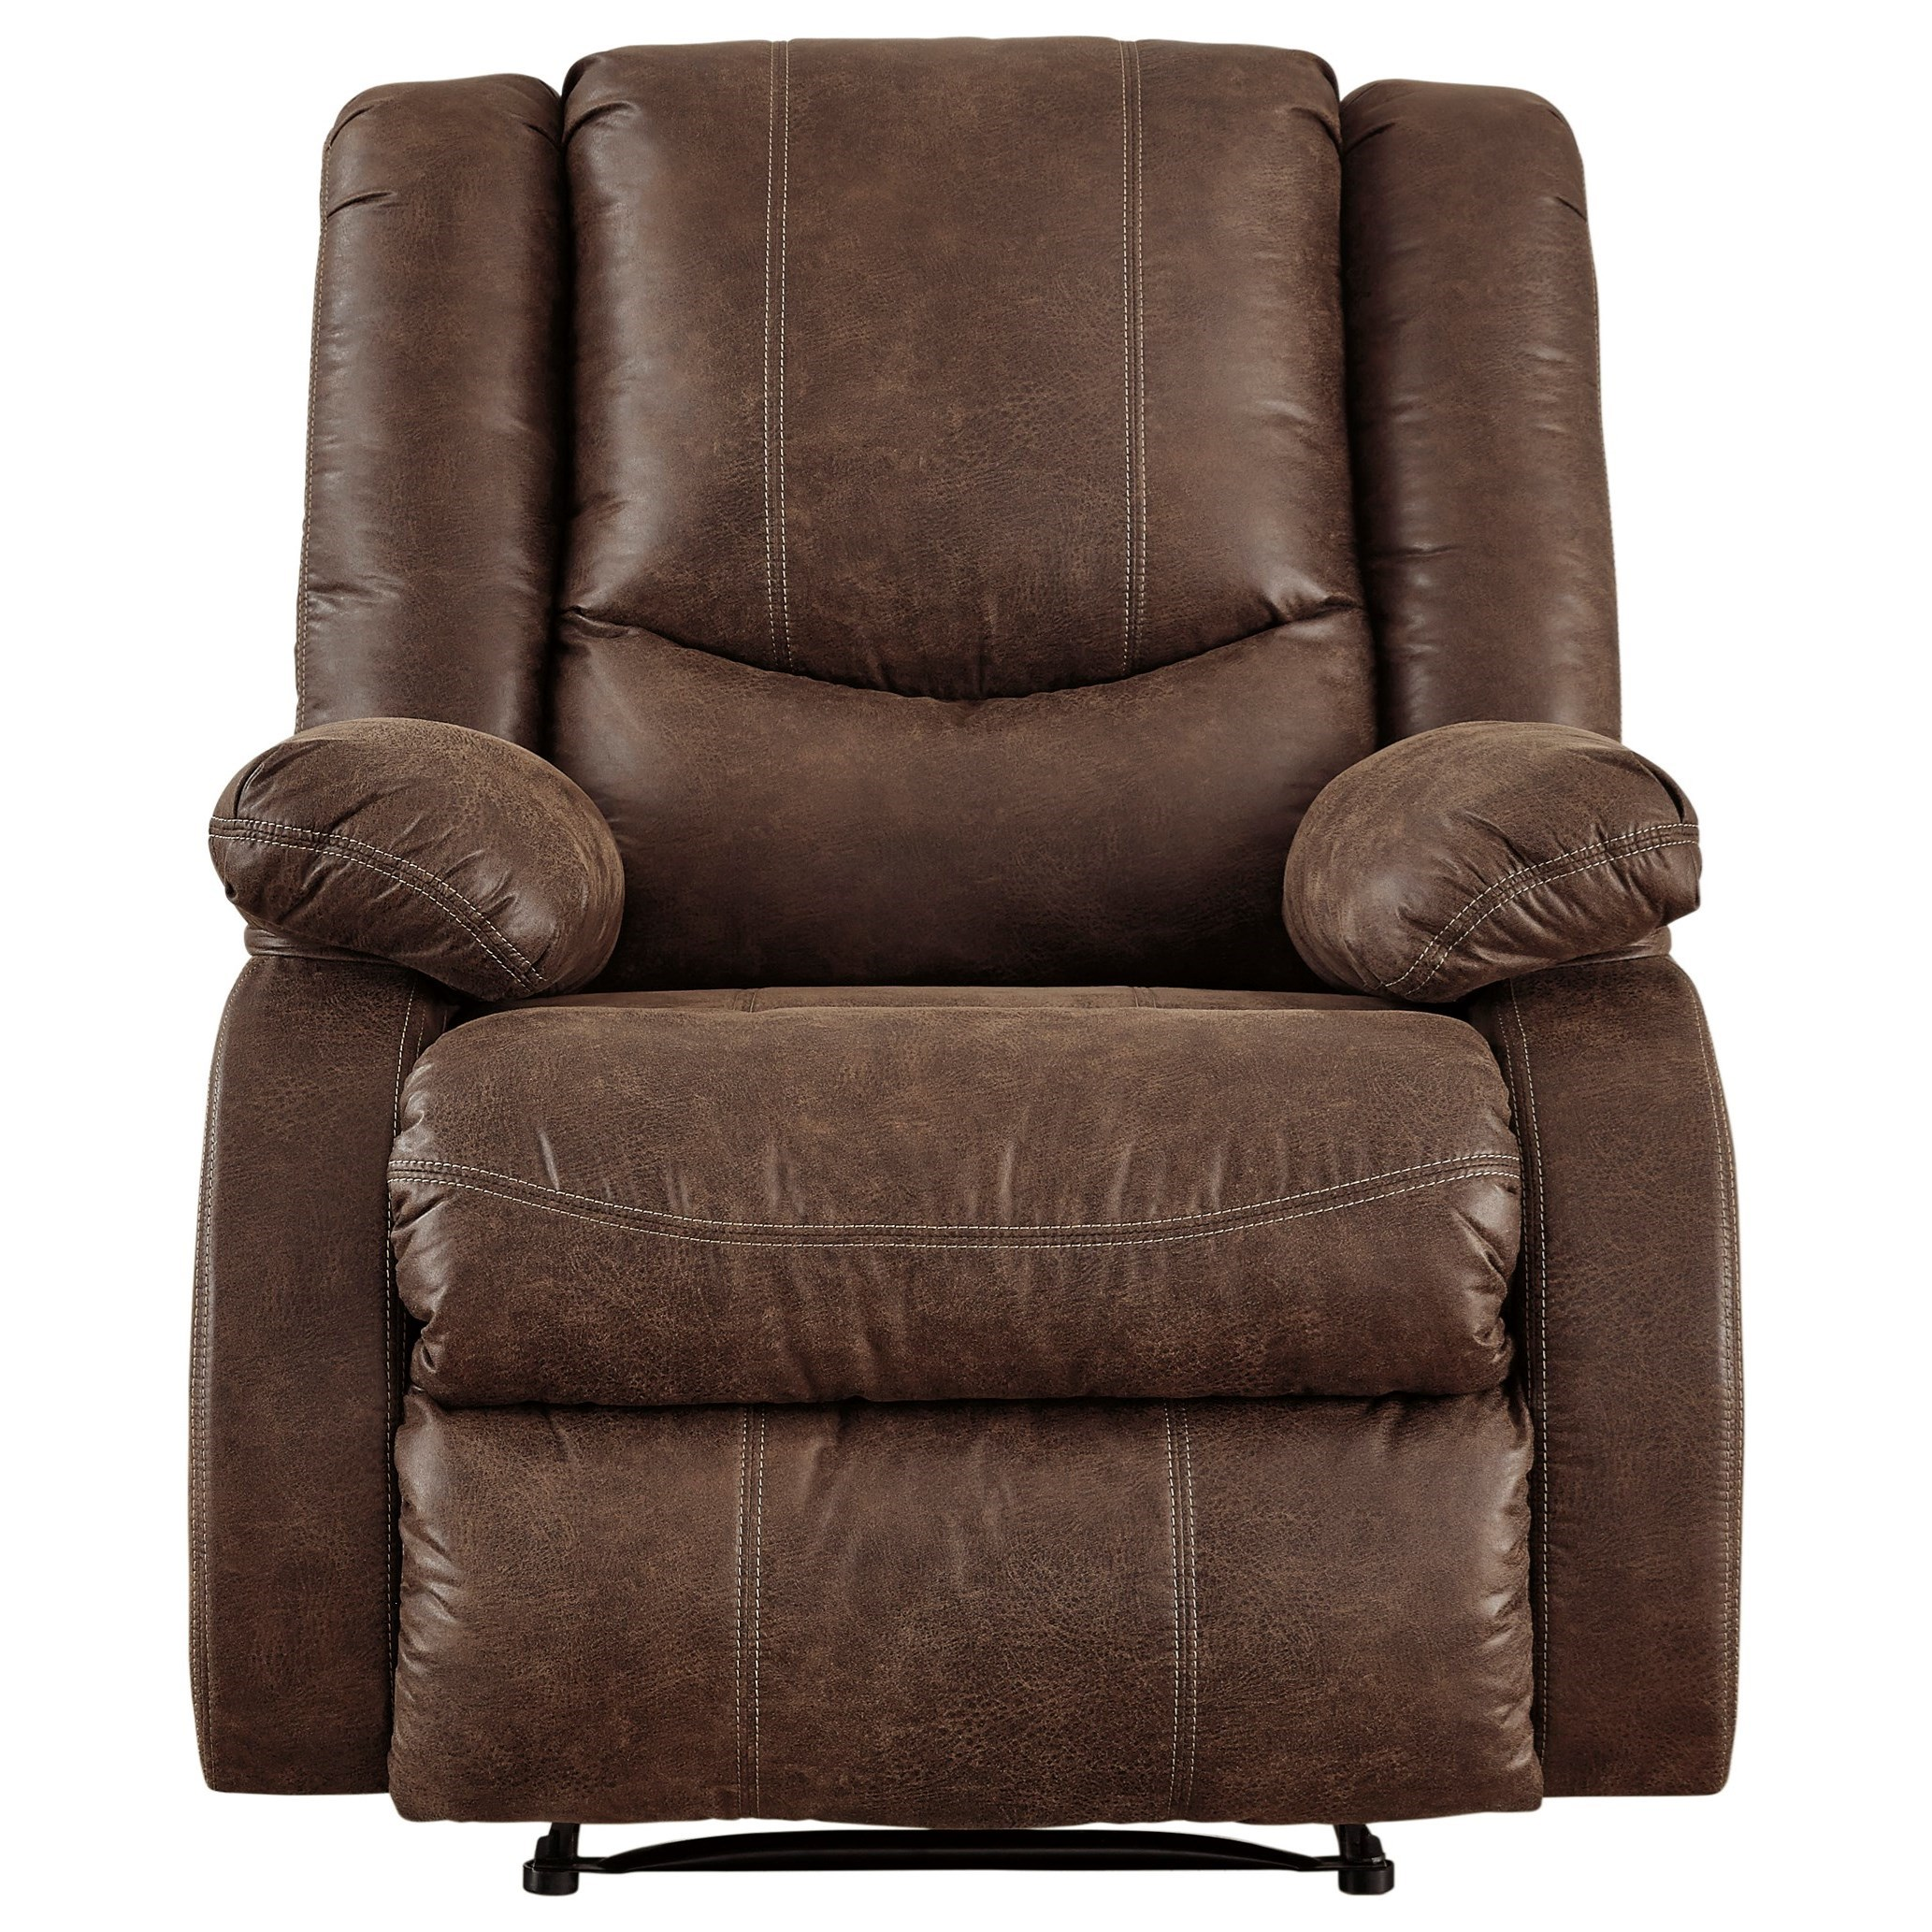 Bladewood Zero Wall Recliner by Signature Design by Ashley at Darvin Furniture